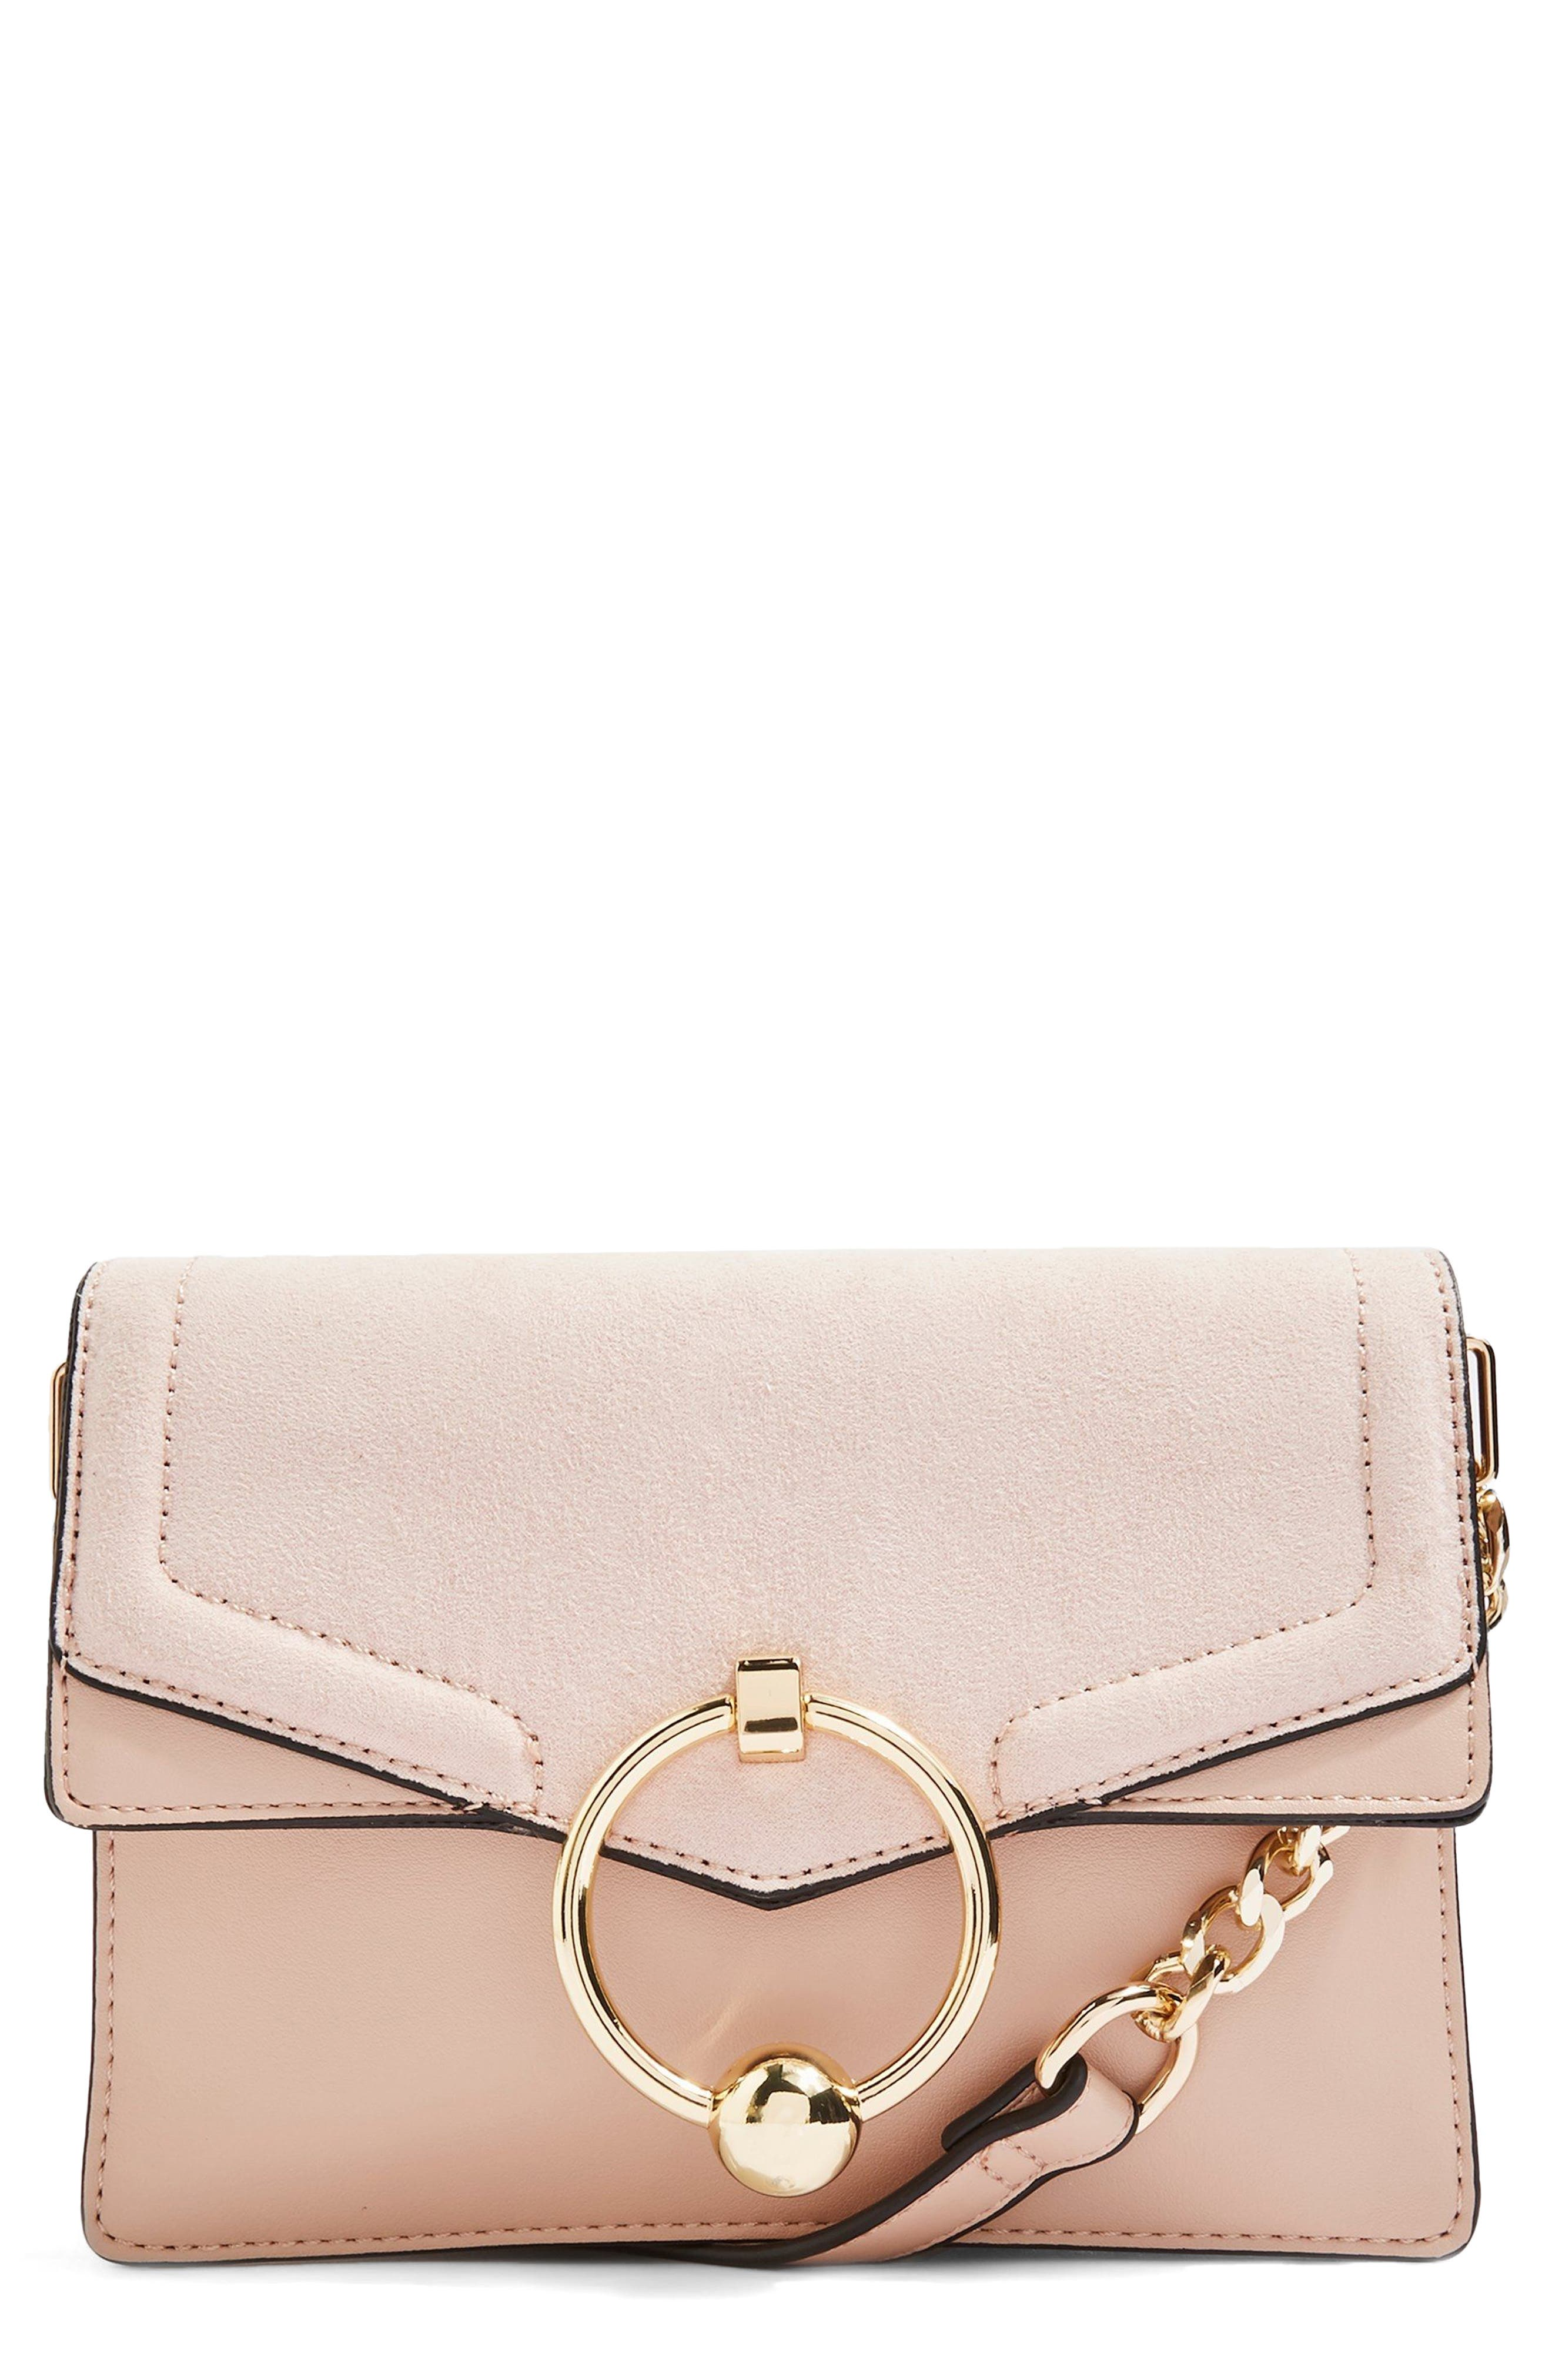 Seline Faux Leather Crossbody Bag,                         Main,                         color, 250